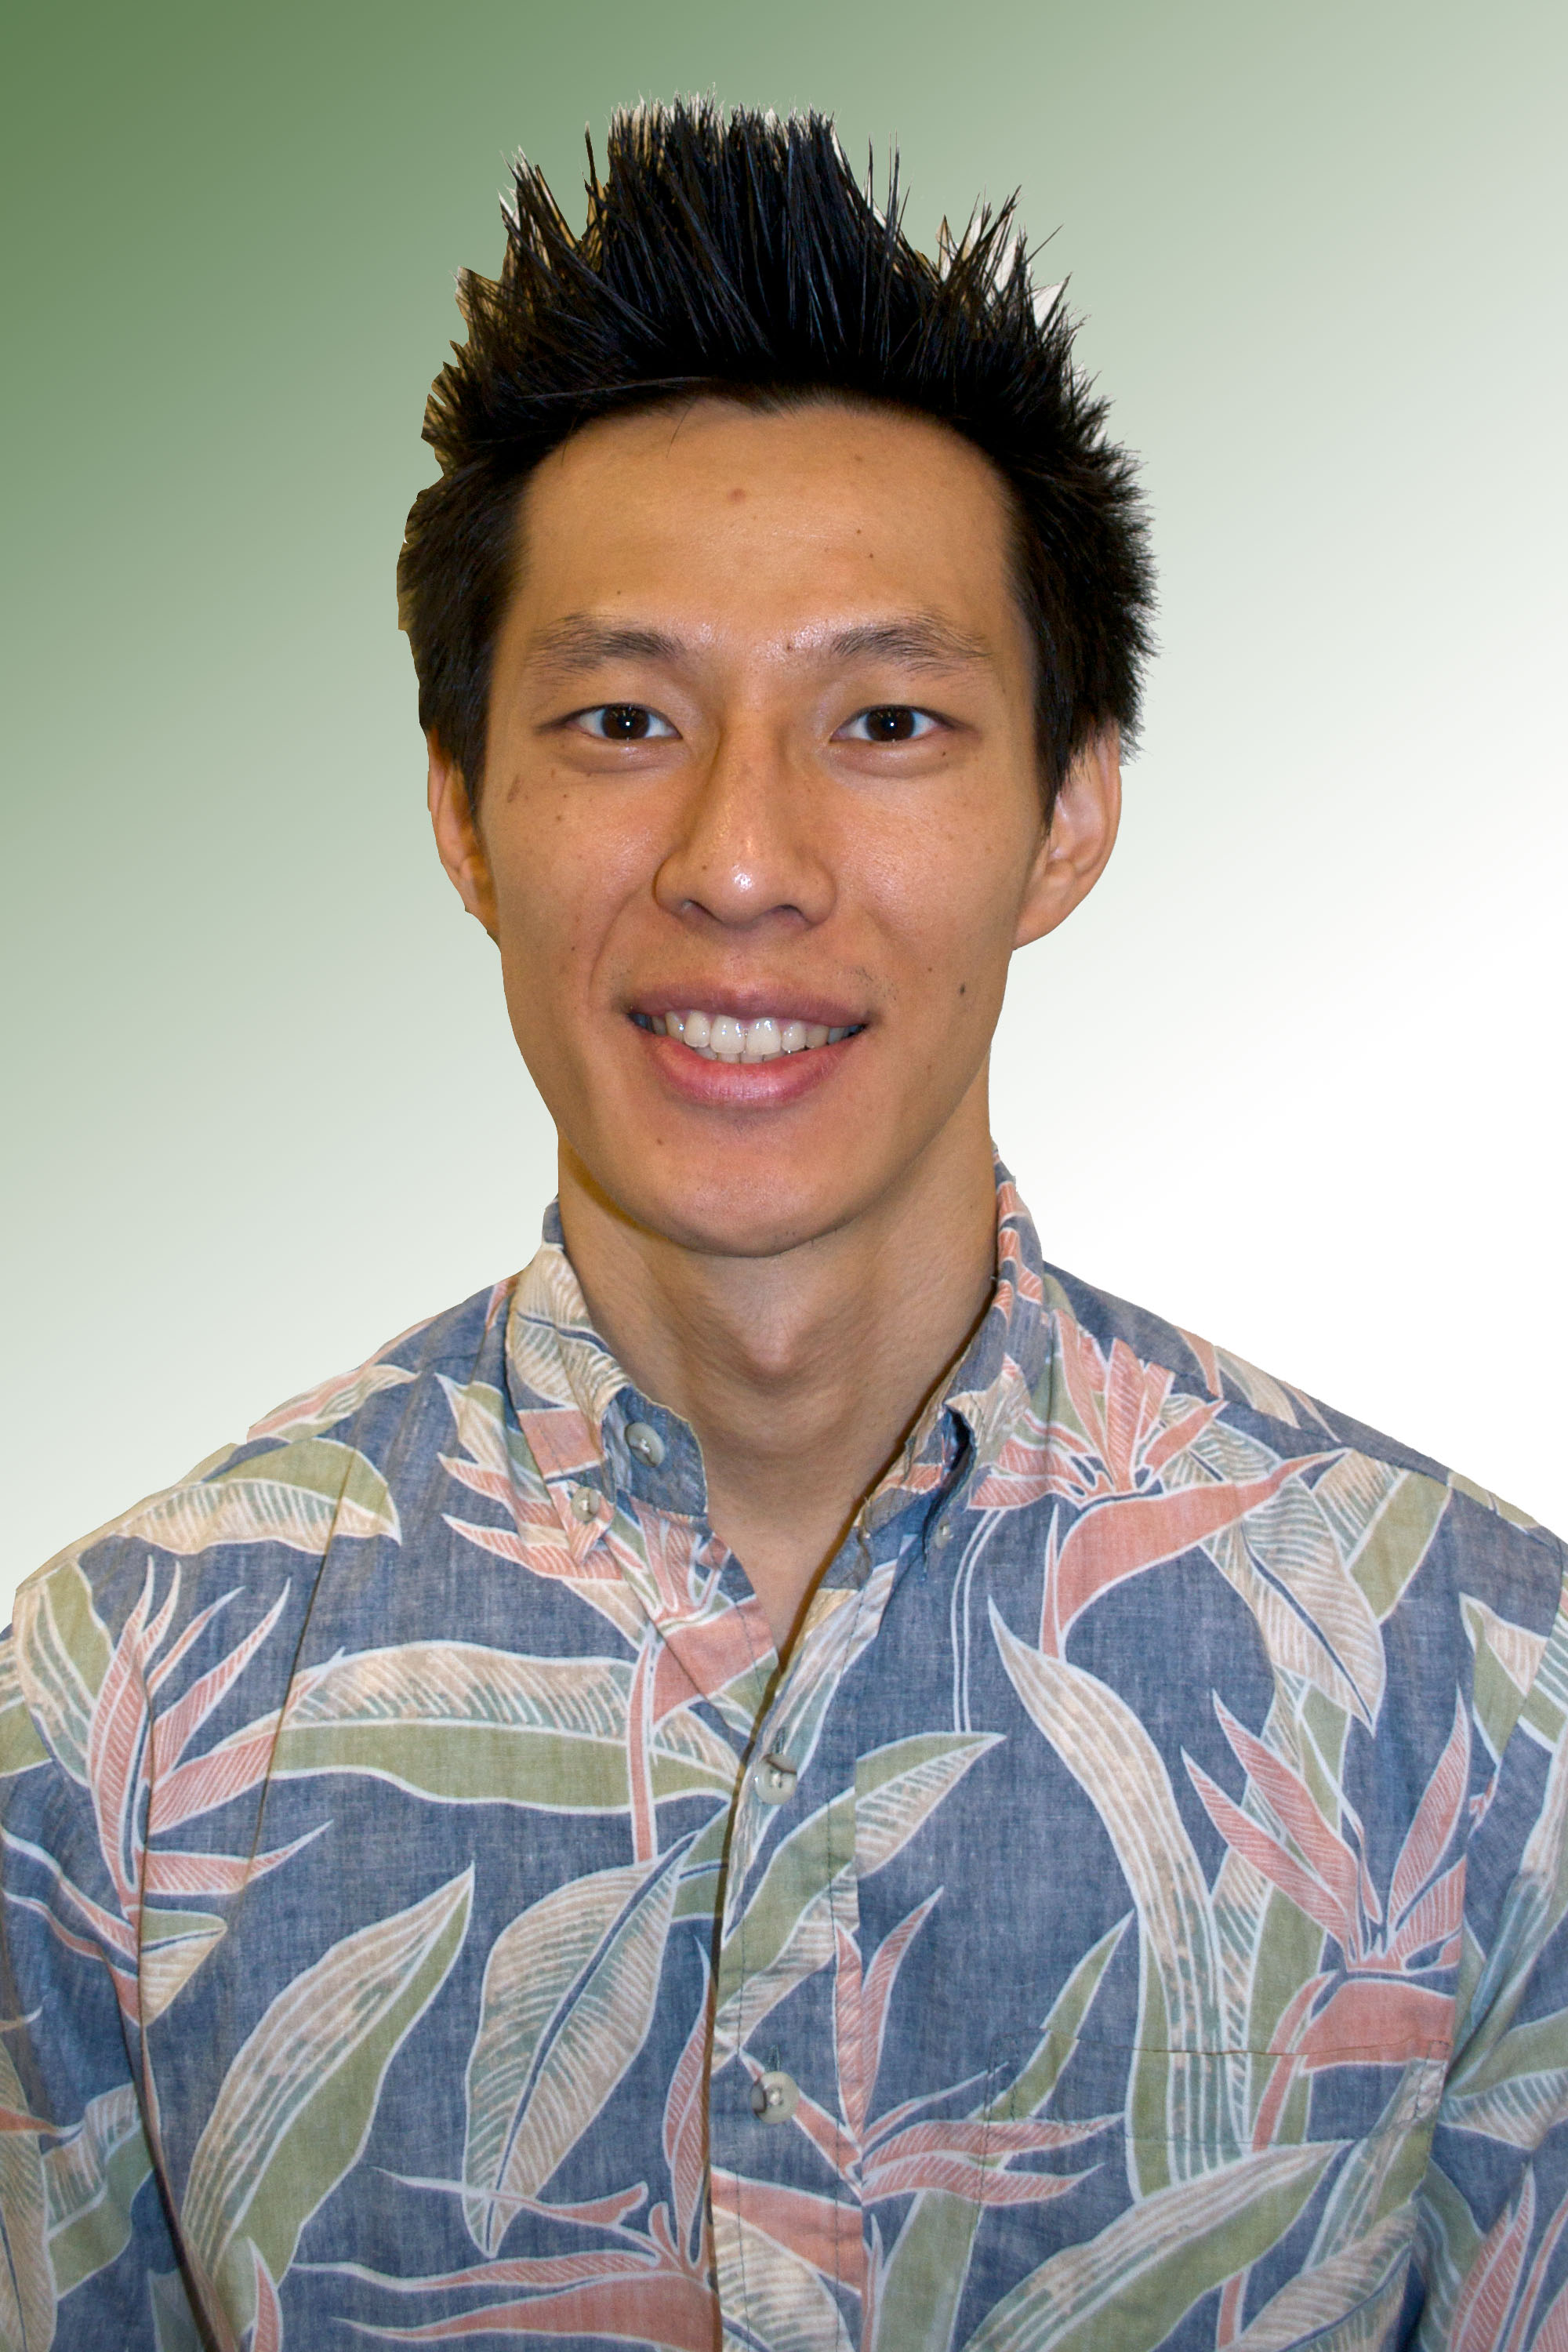 Professional Registration  2008  Mechanical Engineering,California (34058) 2011 Mechanical Engineering,Hawaii (14297) 2012 Fire Protection Engineering, California (1805)   Professional Experience  Yoon Hwang has been with InSynergy Engineering, Inc. for 12 years. He is a registered mechanical, fire protection and LEED Accredited Professional. He has completed the design of major mechanical and plumbing design work for various private and government clients including Kaiser Permanente, State DOT-A, NAVFAC, Army Corps, and Tripler Army Medical Center.